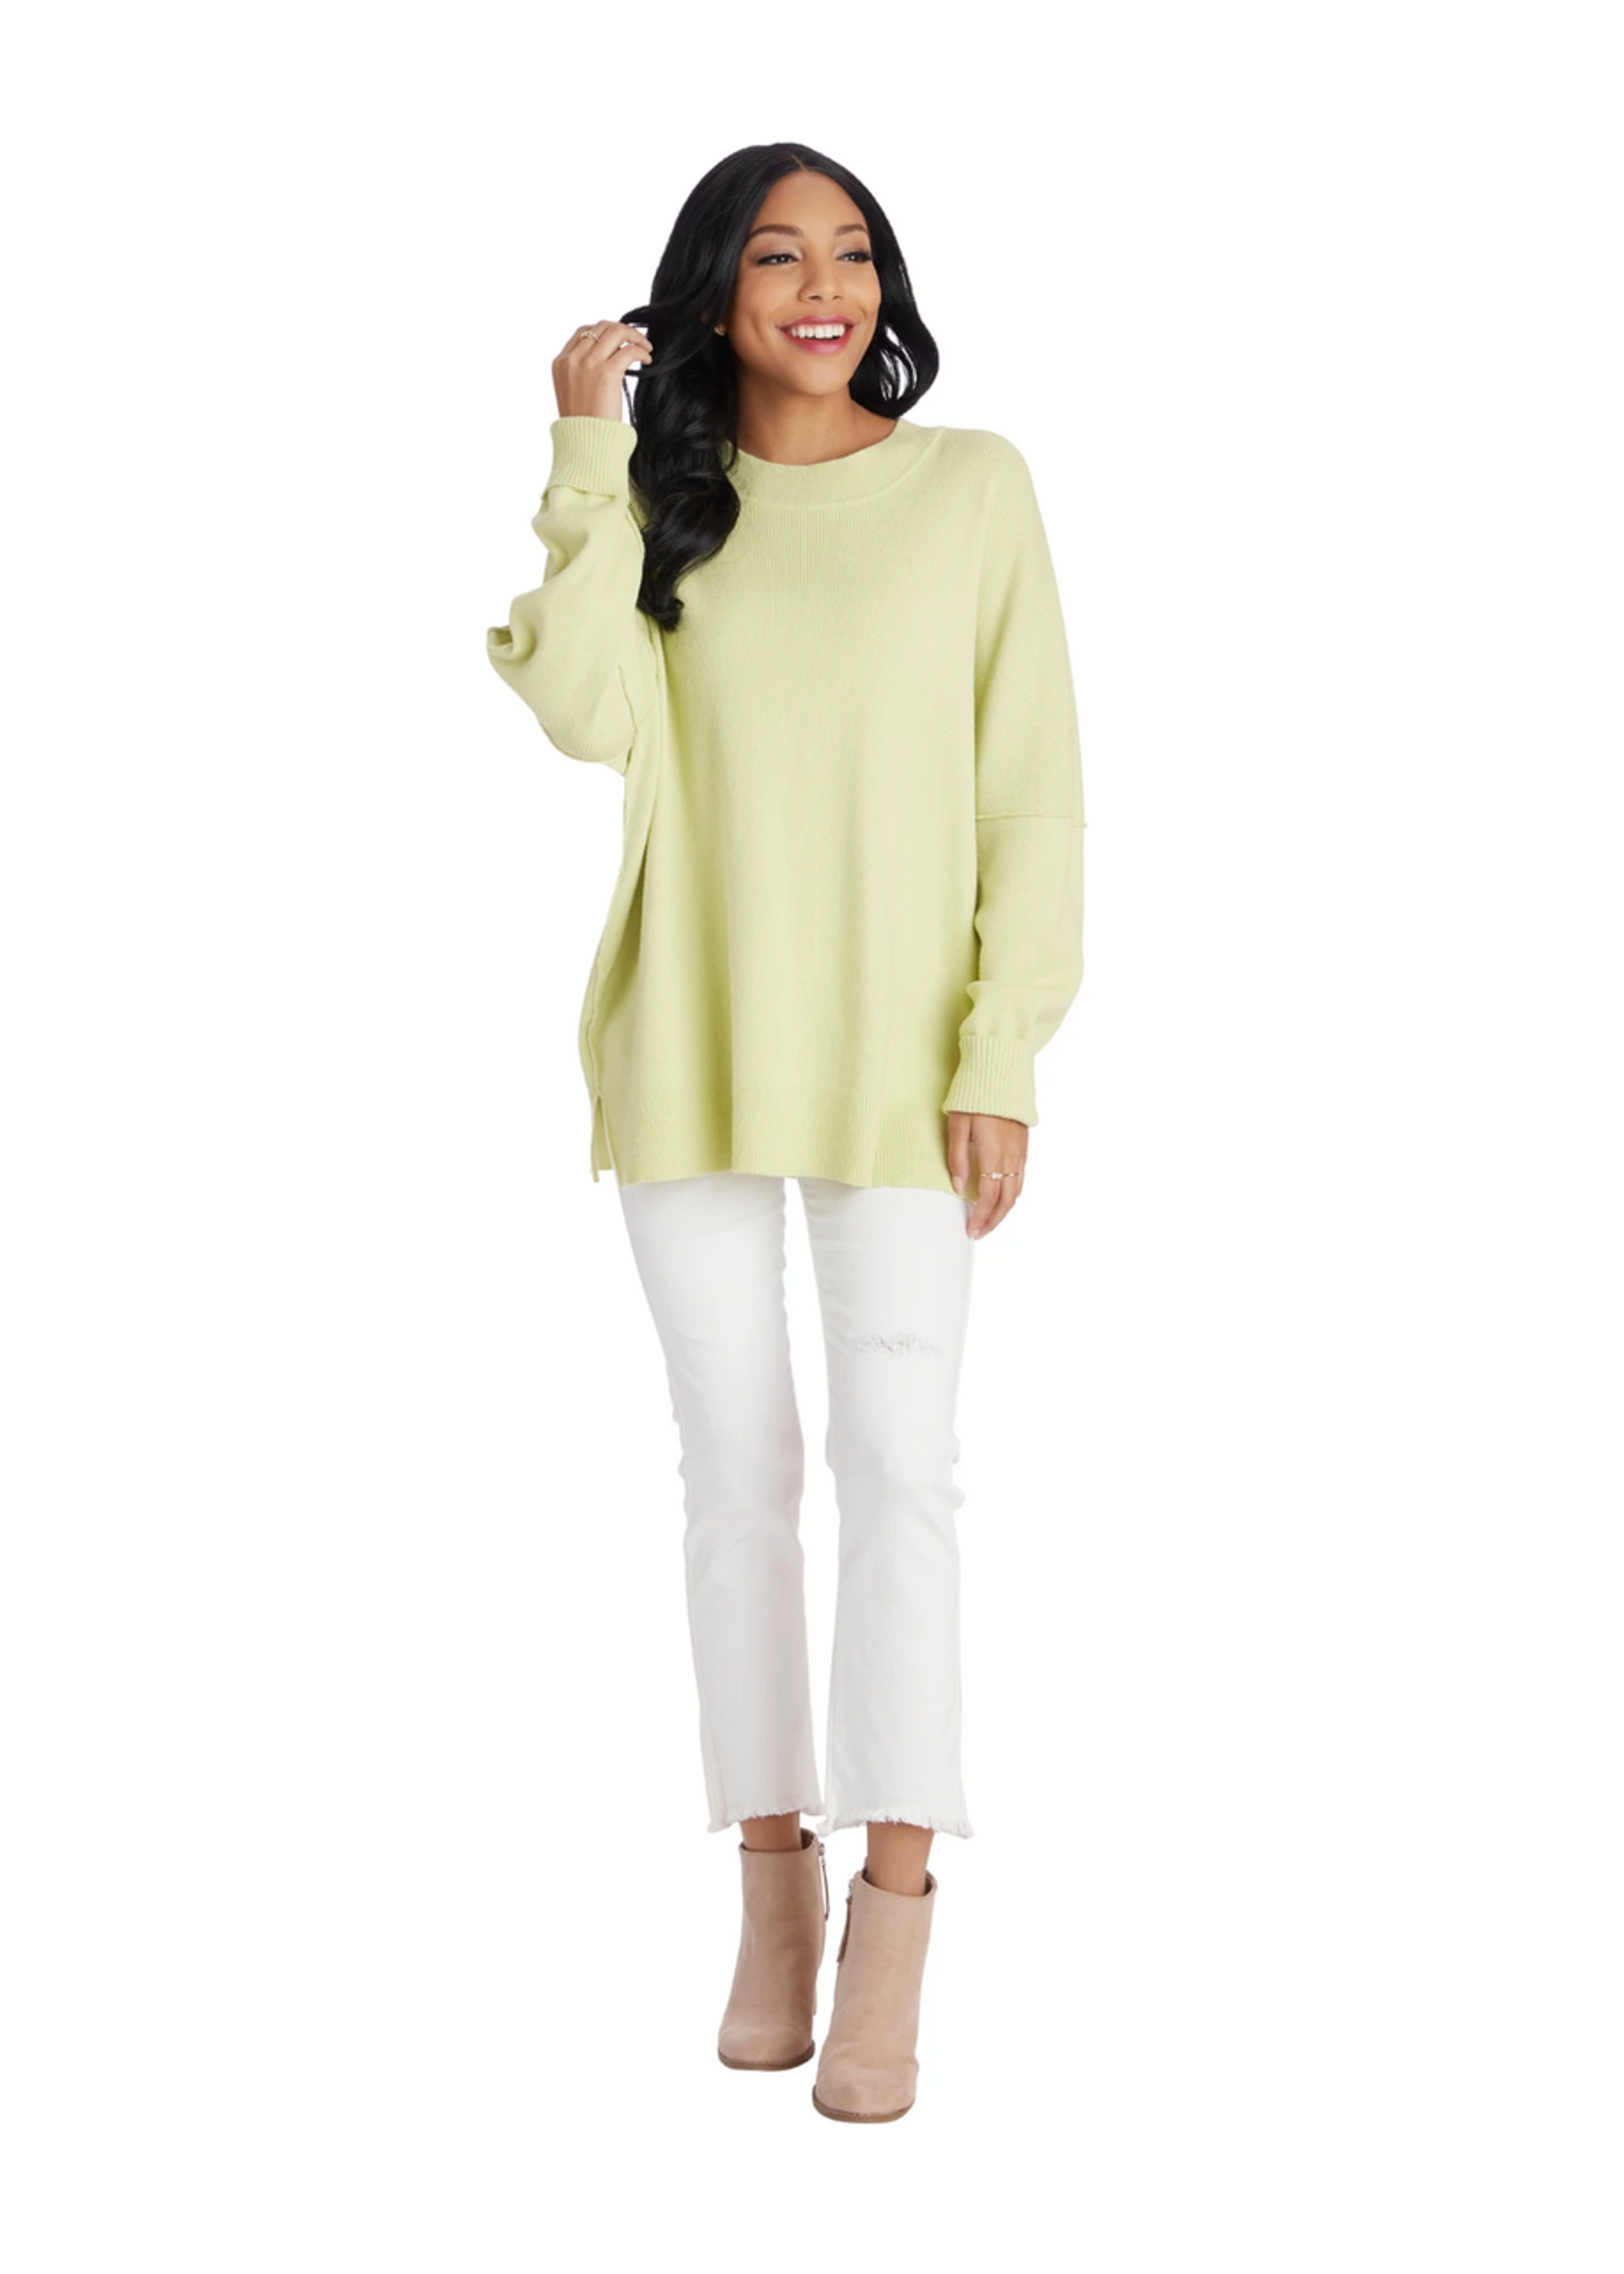 Elitaire Boutique Astrid Ribbed Sweater in Lime